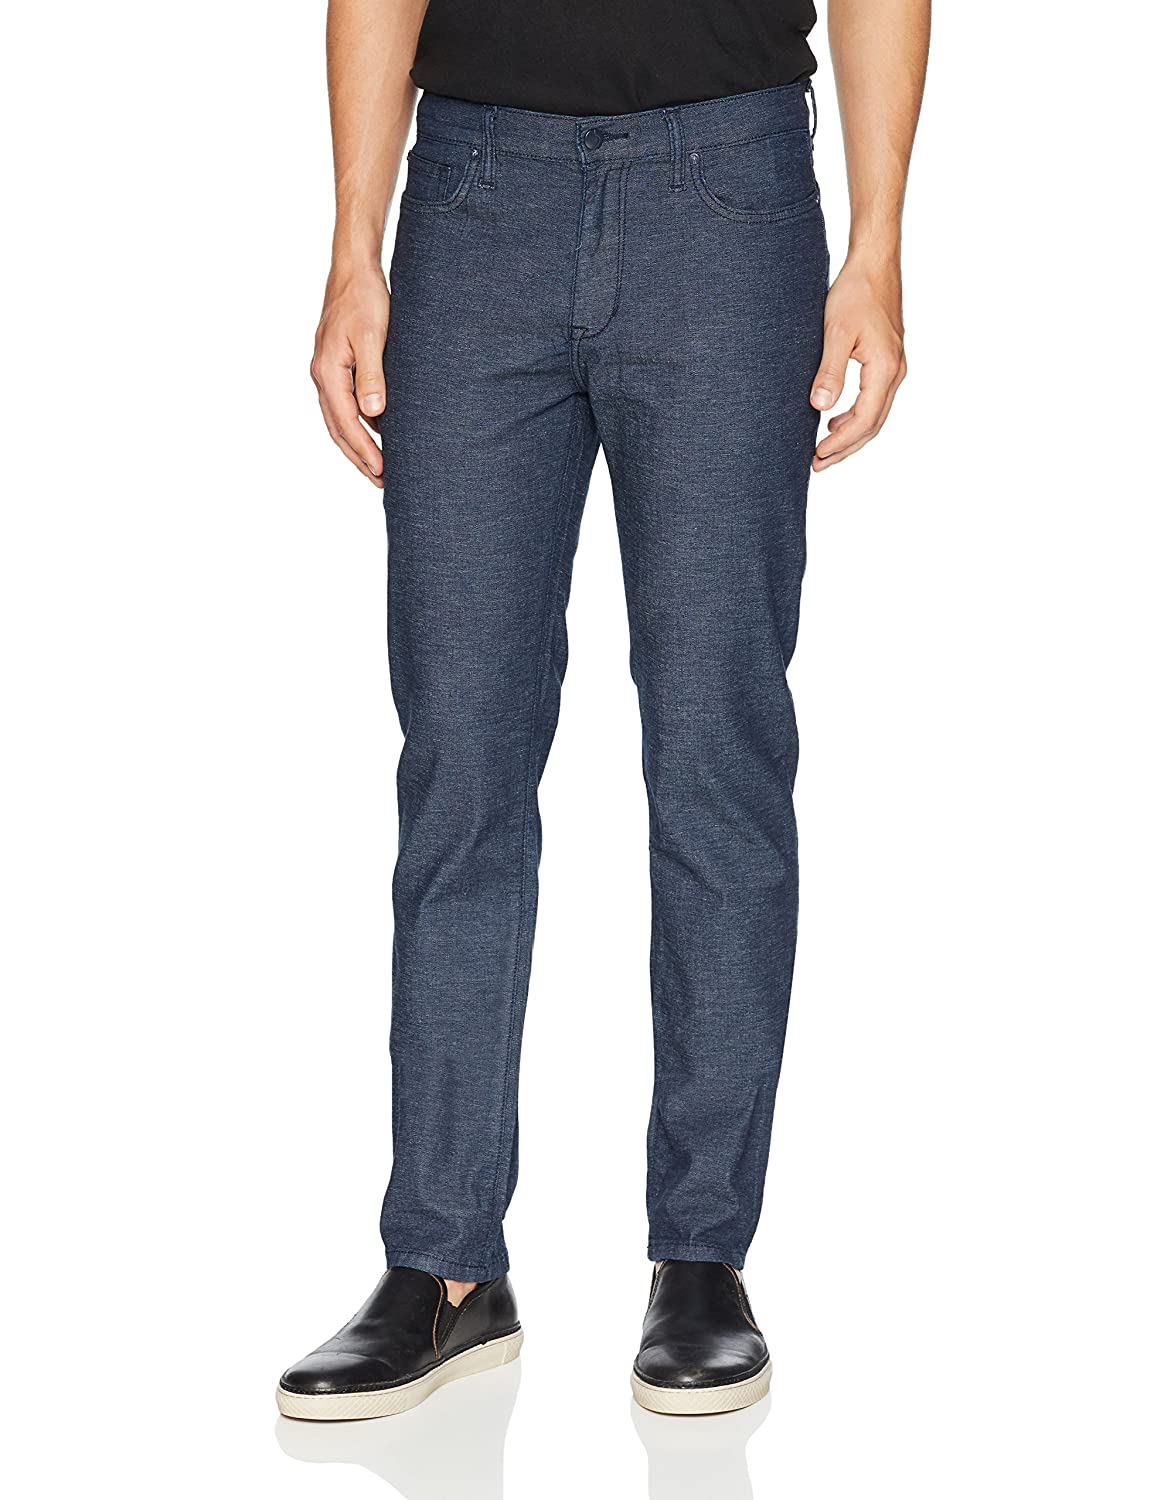 Joes Jeans Mens The Brixton